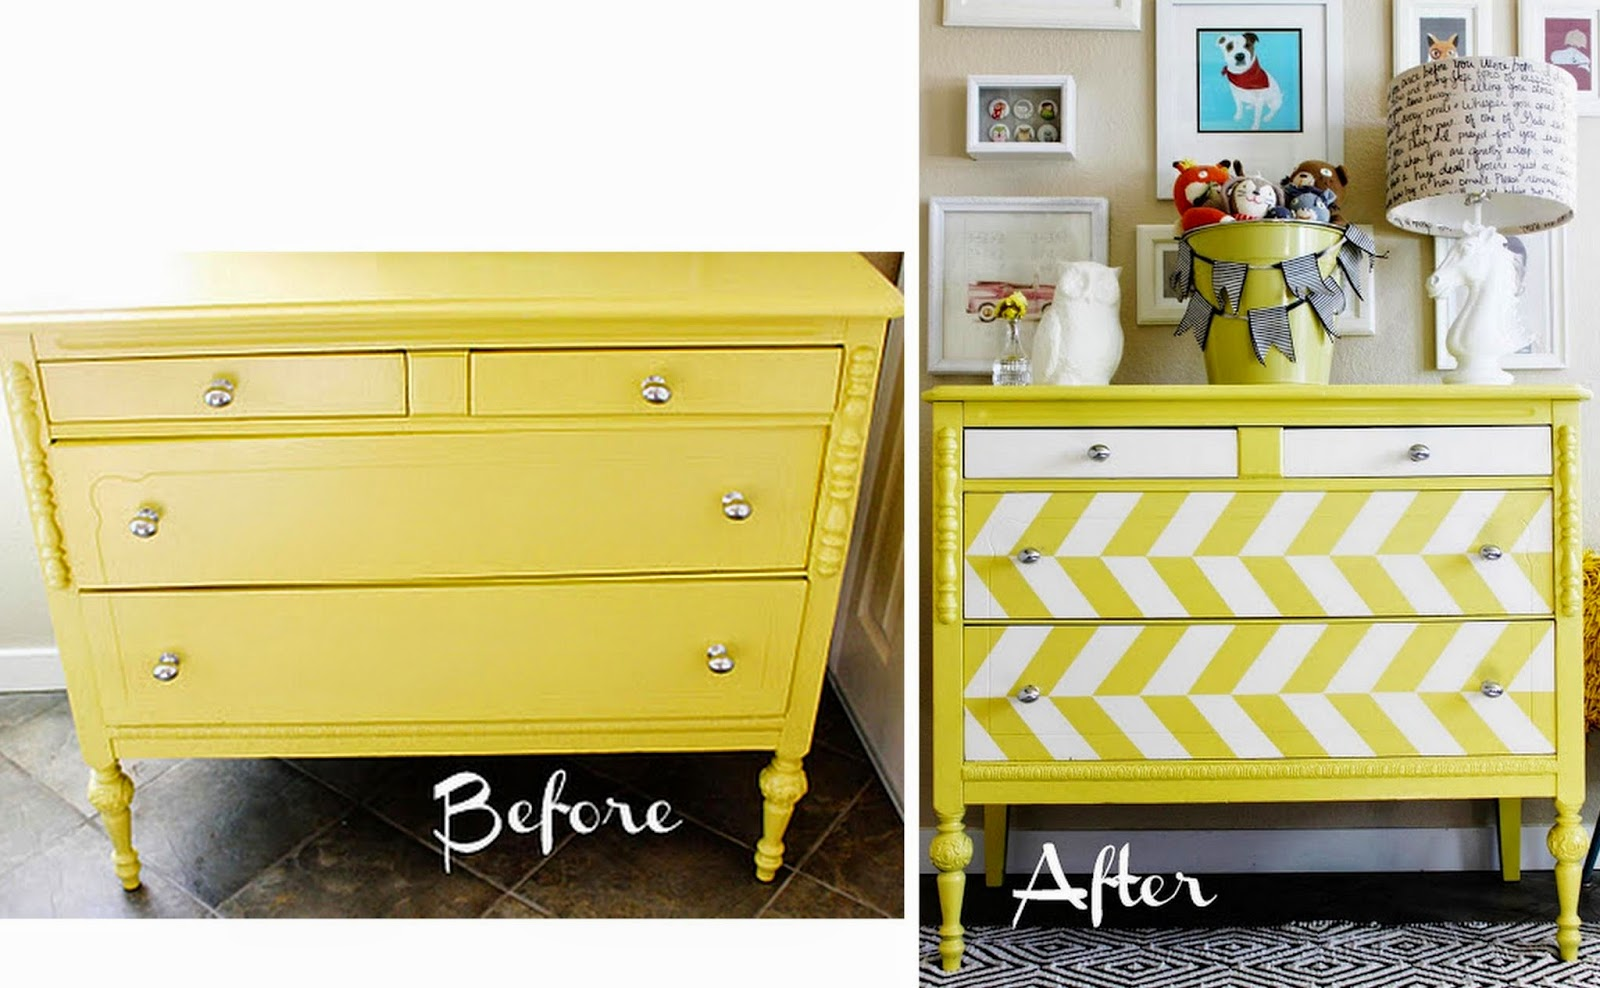 furniture refurbished. Furniture Refurbished. Refurbished Yellow And White Chest Of Drawers G